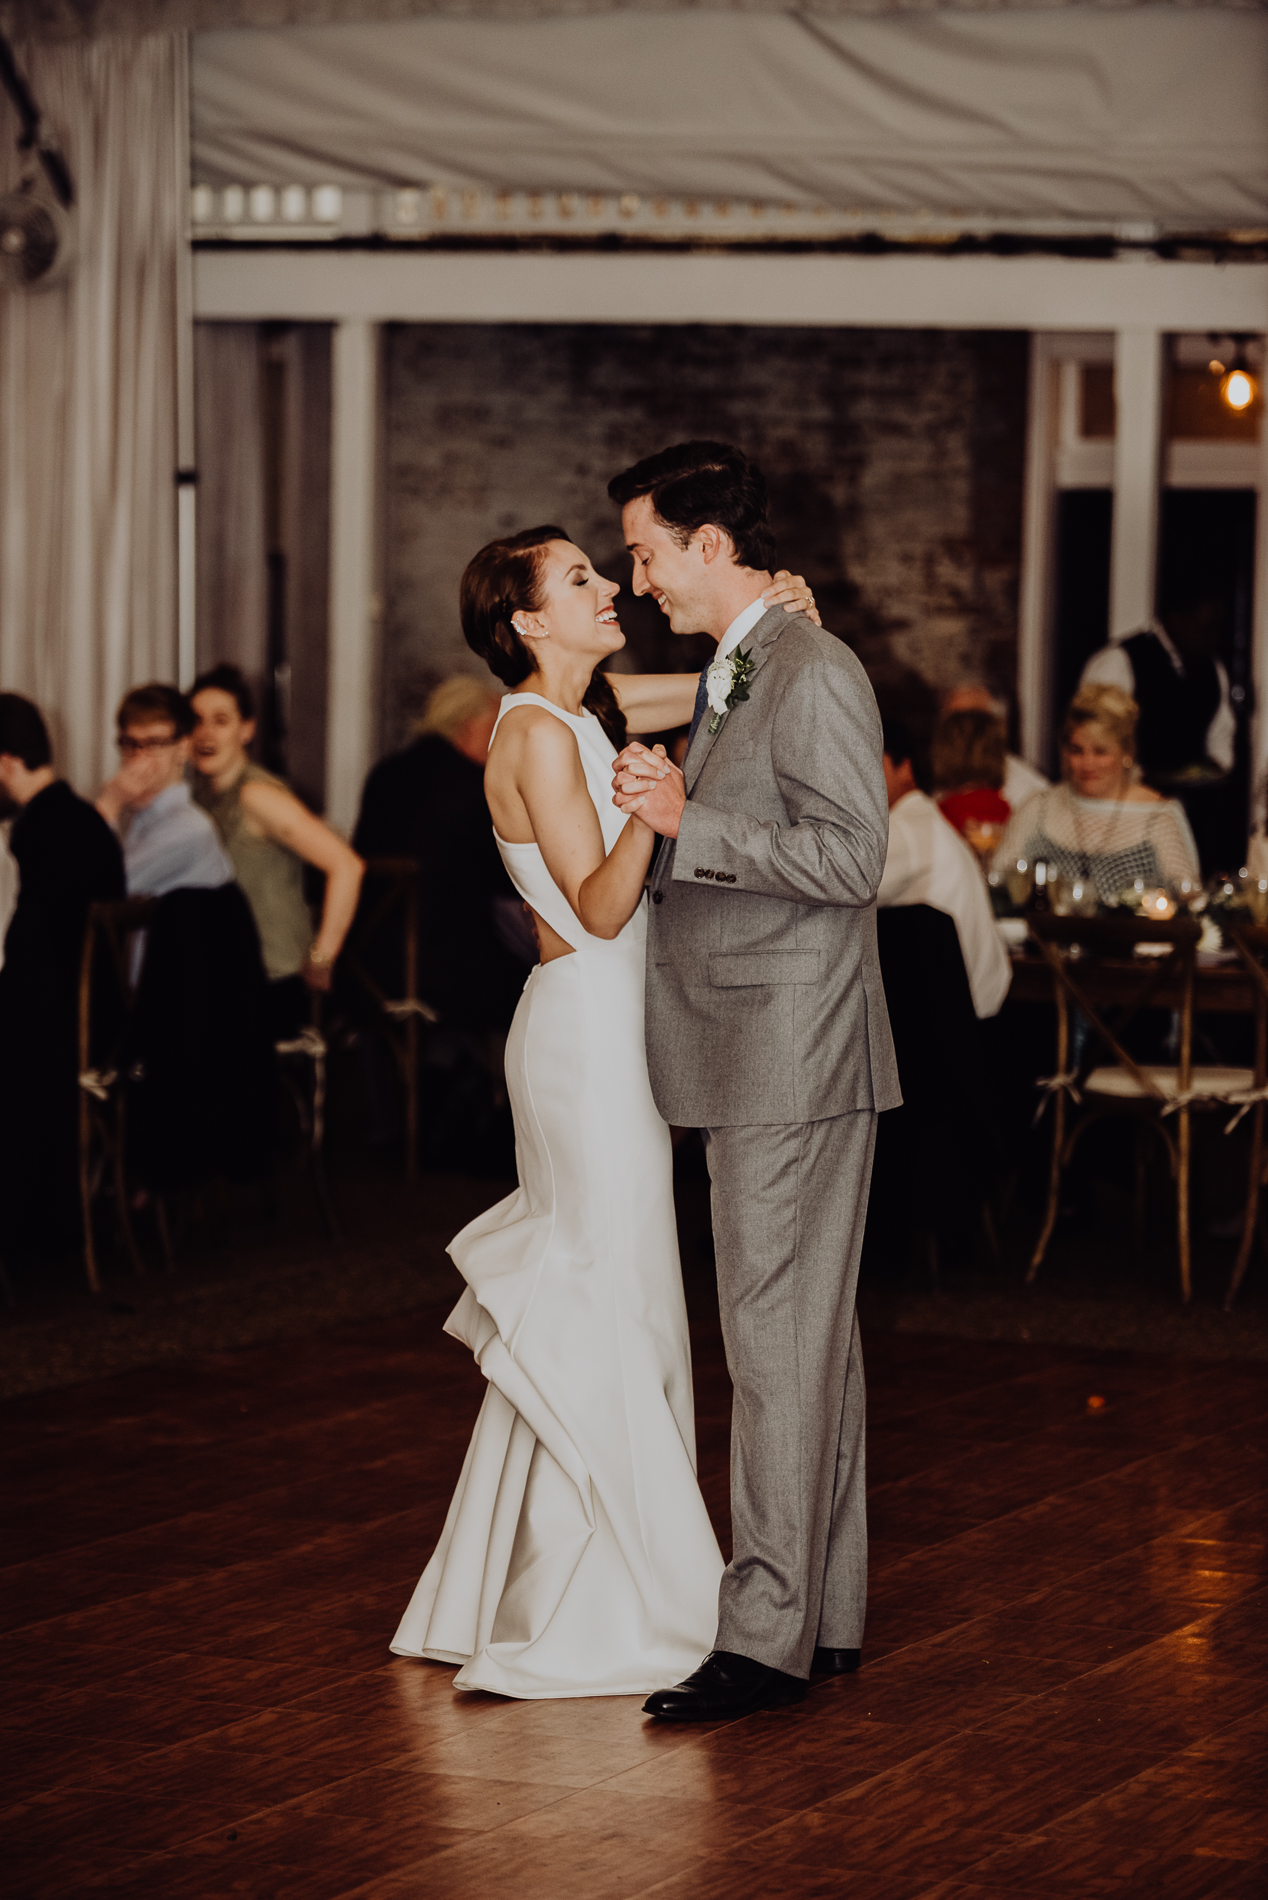 gabi and campbell east nashville wedding at riverwood mansion by wilde company-41.jpg